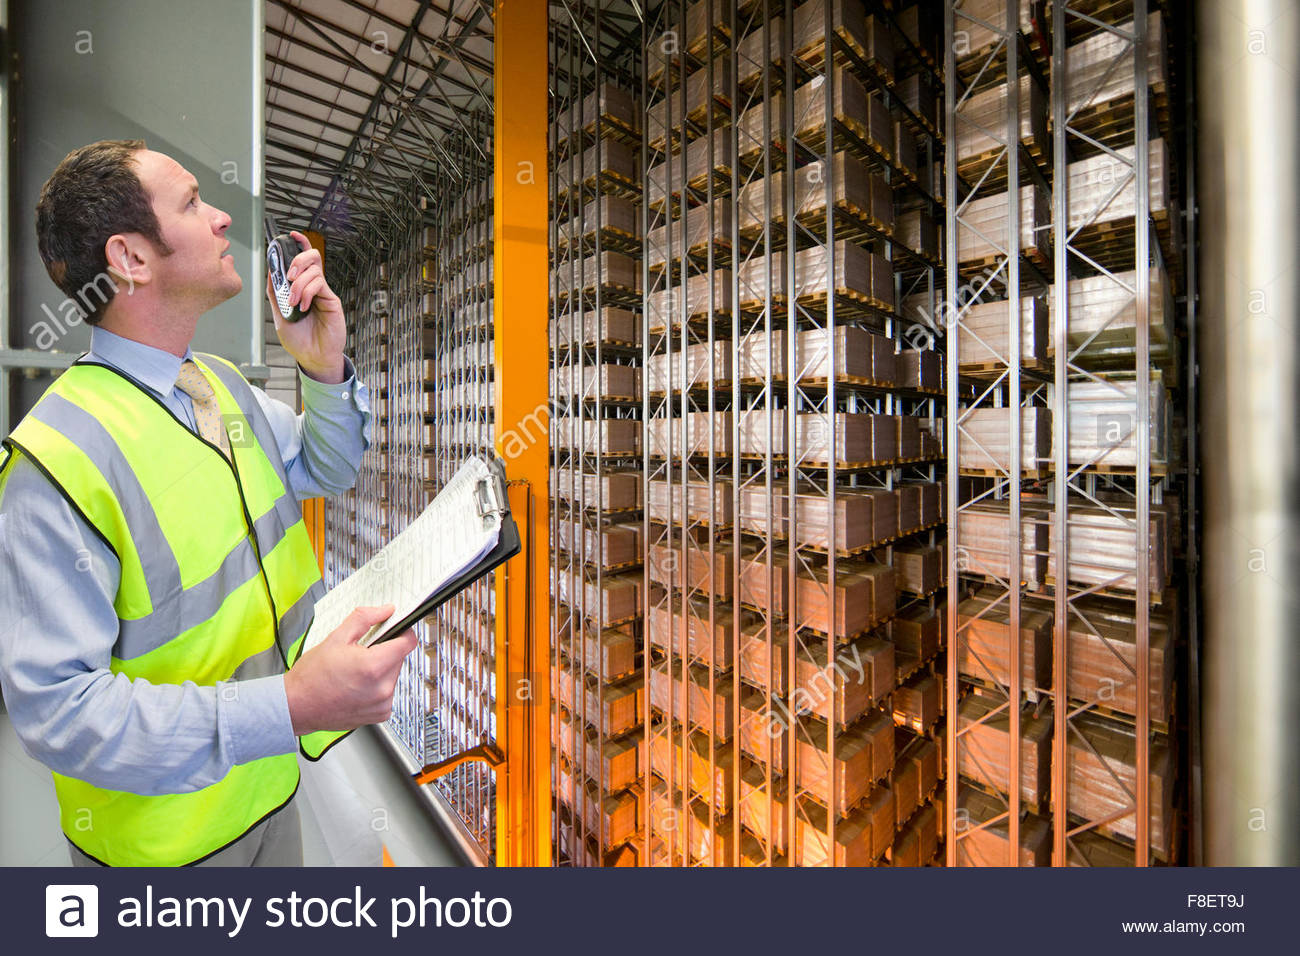 Worker with walkie-talkie and clipboard looking up at foodstuffs merchandise stored in automated storage and retrieval - Stock Image